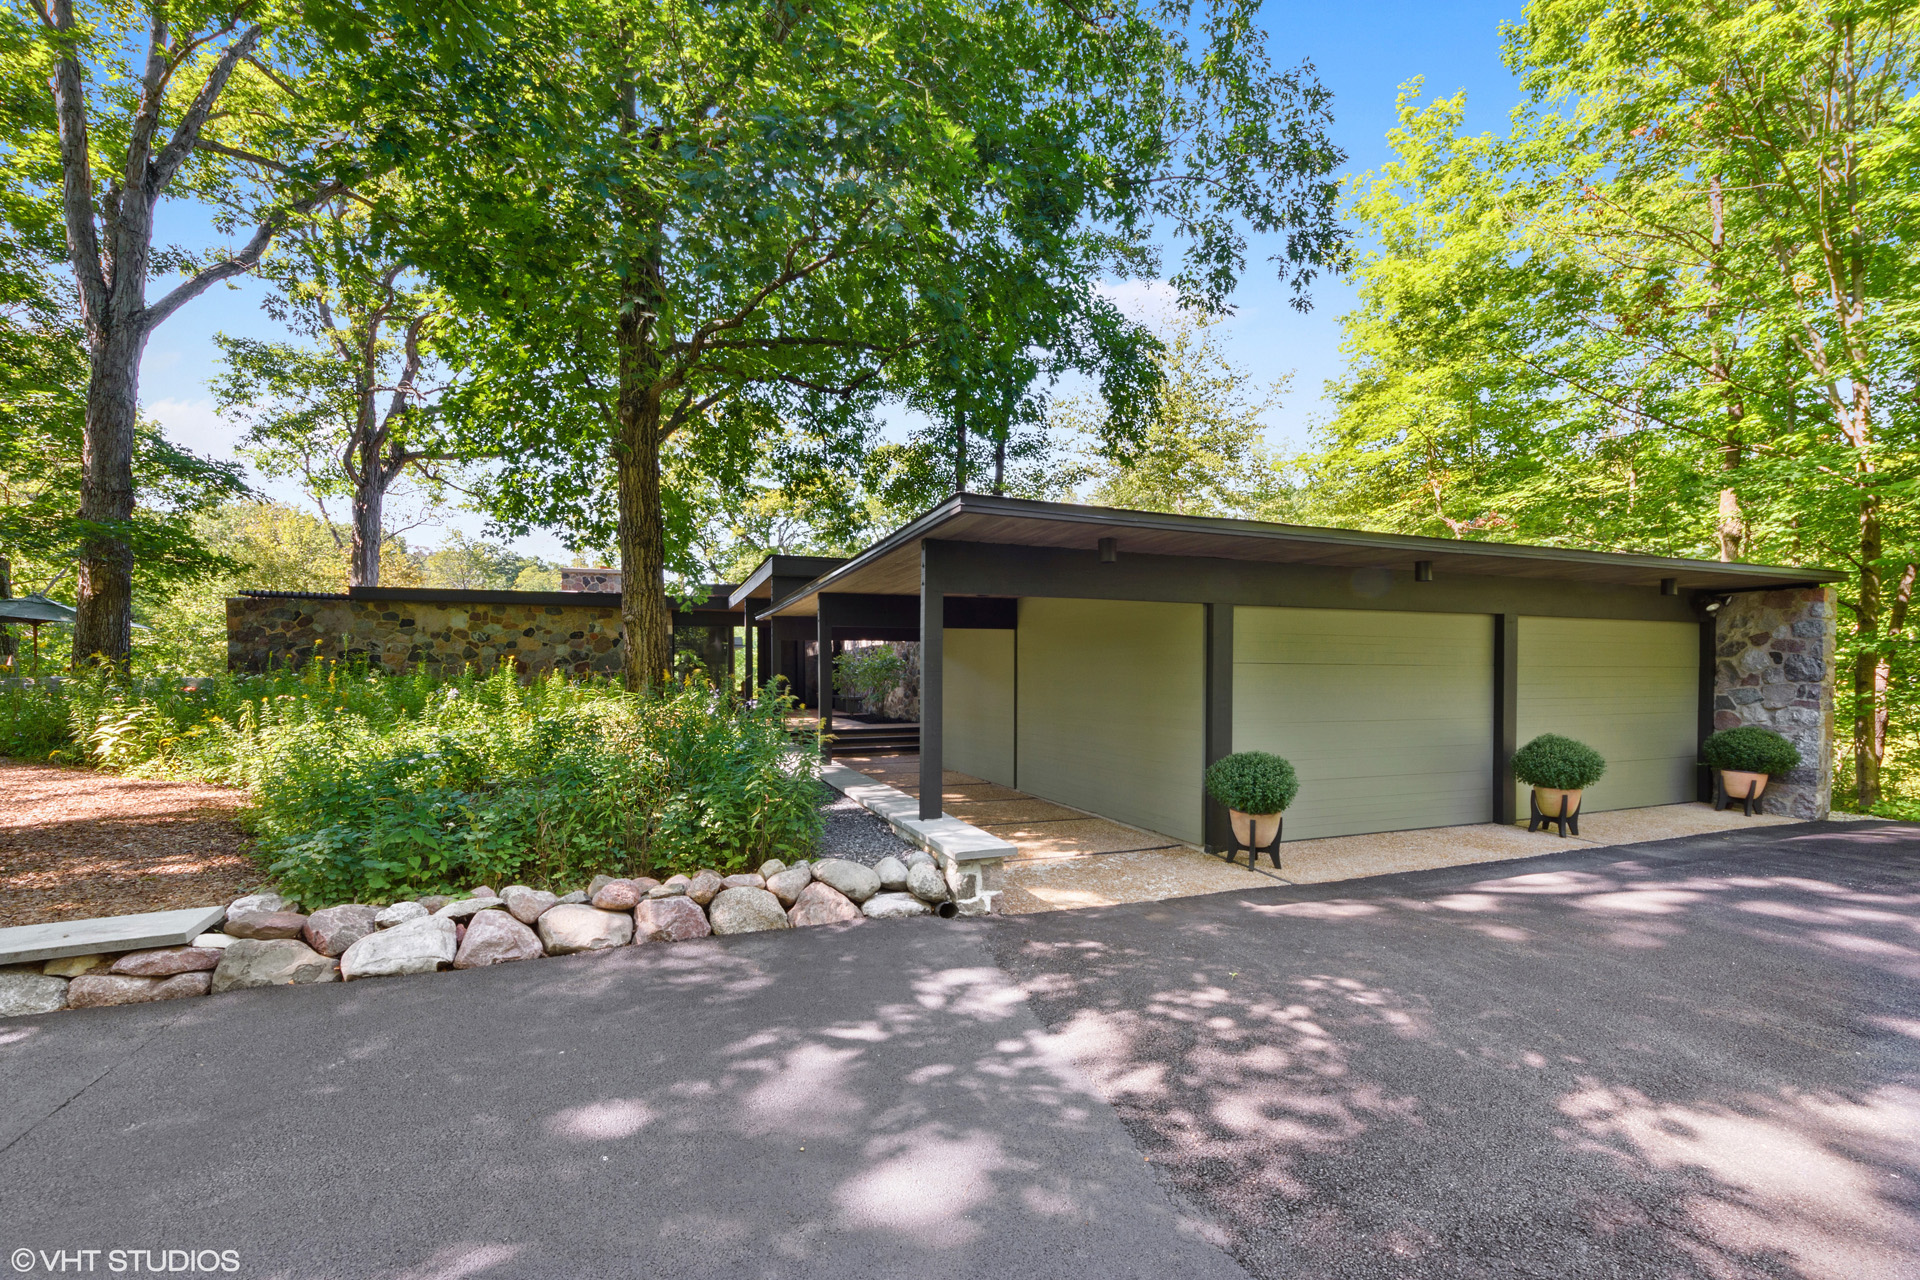 To schedule a private showing of this amazing home, please contact Lou Zucaro at 312.907.4085 or via email at lou@modernil.com